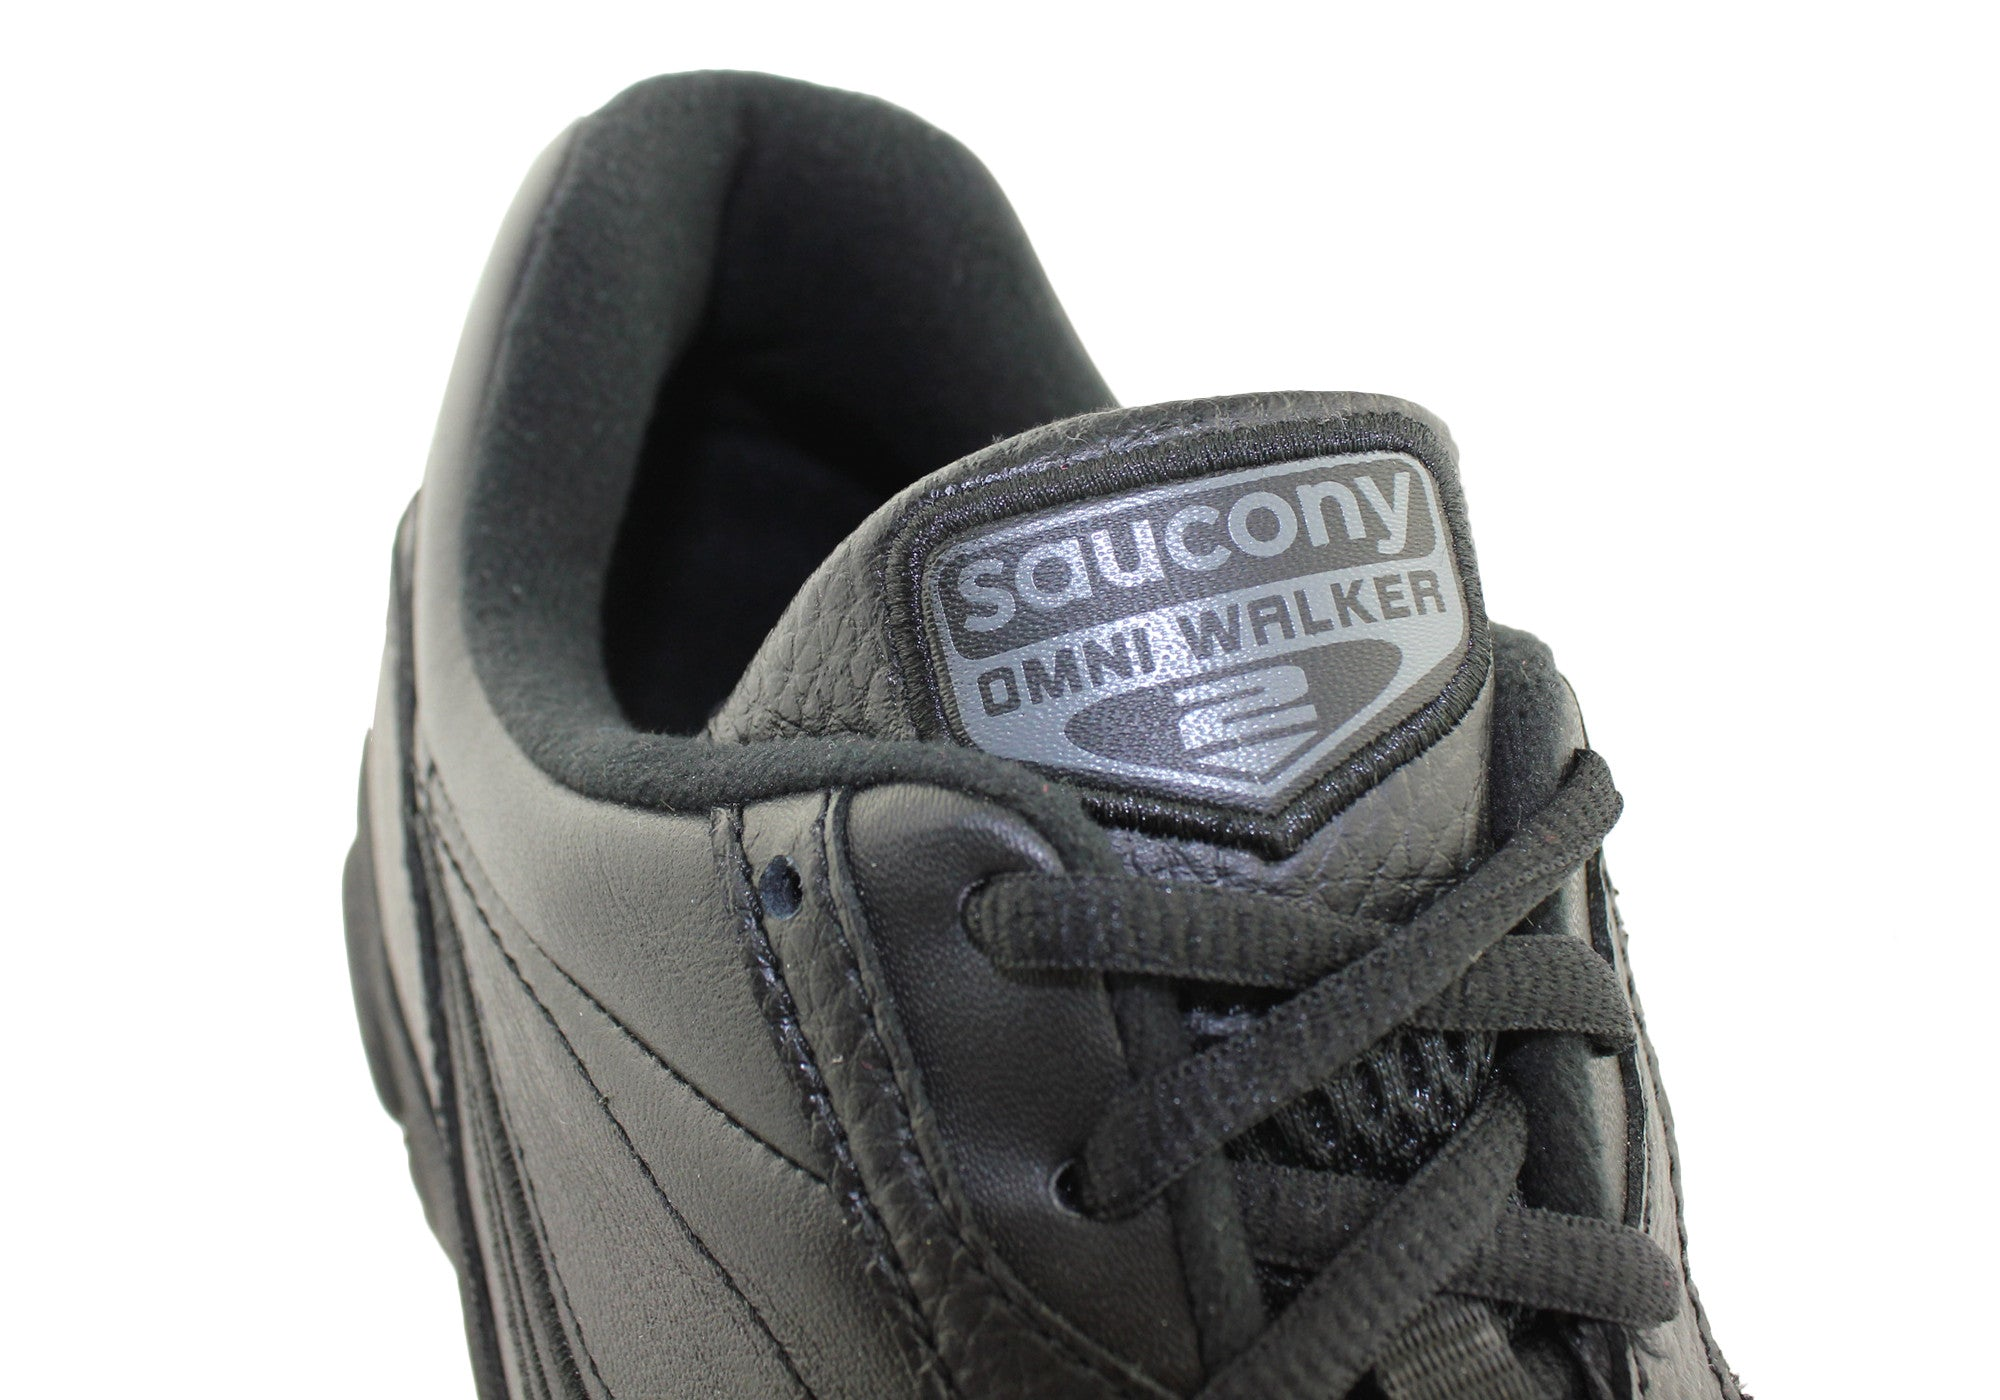 4dd0af9e94 Saucony Omni Walker 2 Mens Wide Fit Leather Shoes | Brand House Direct